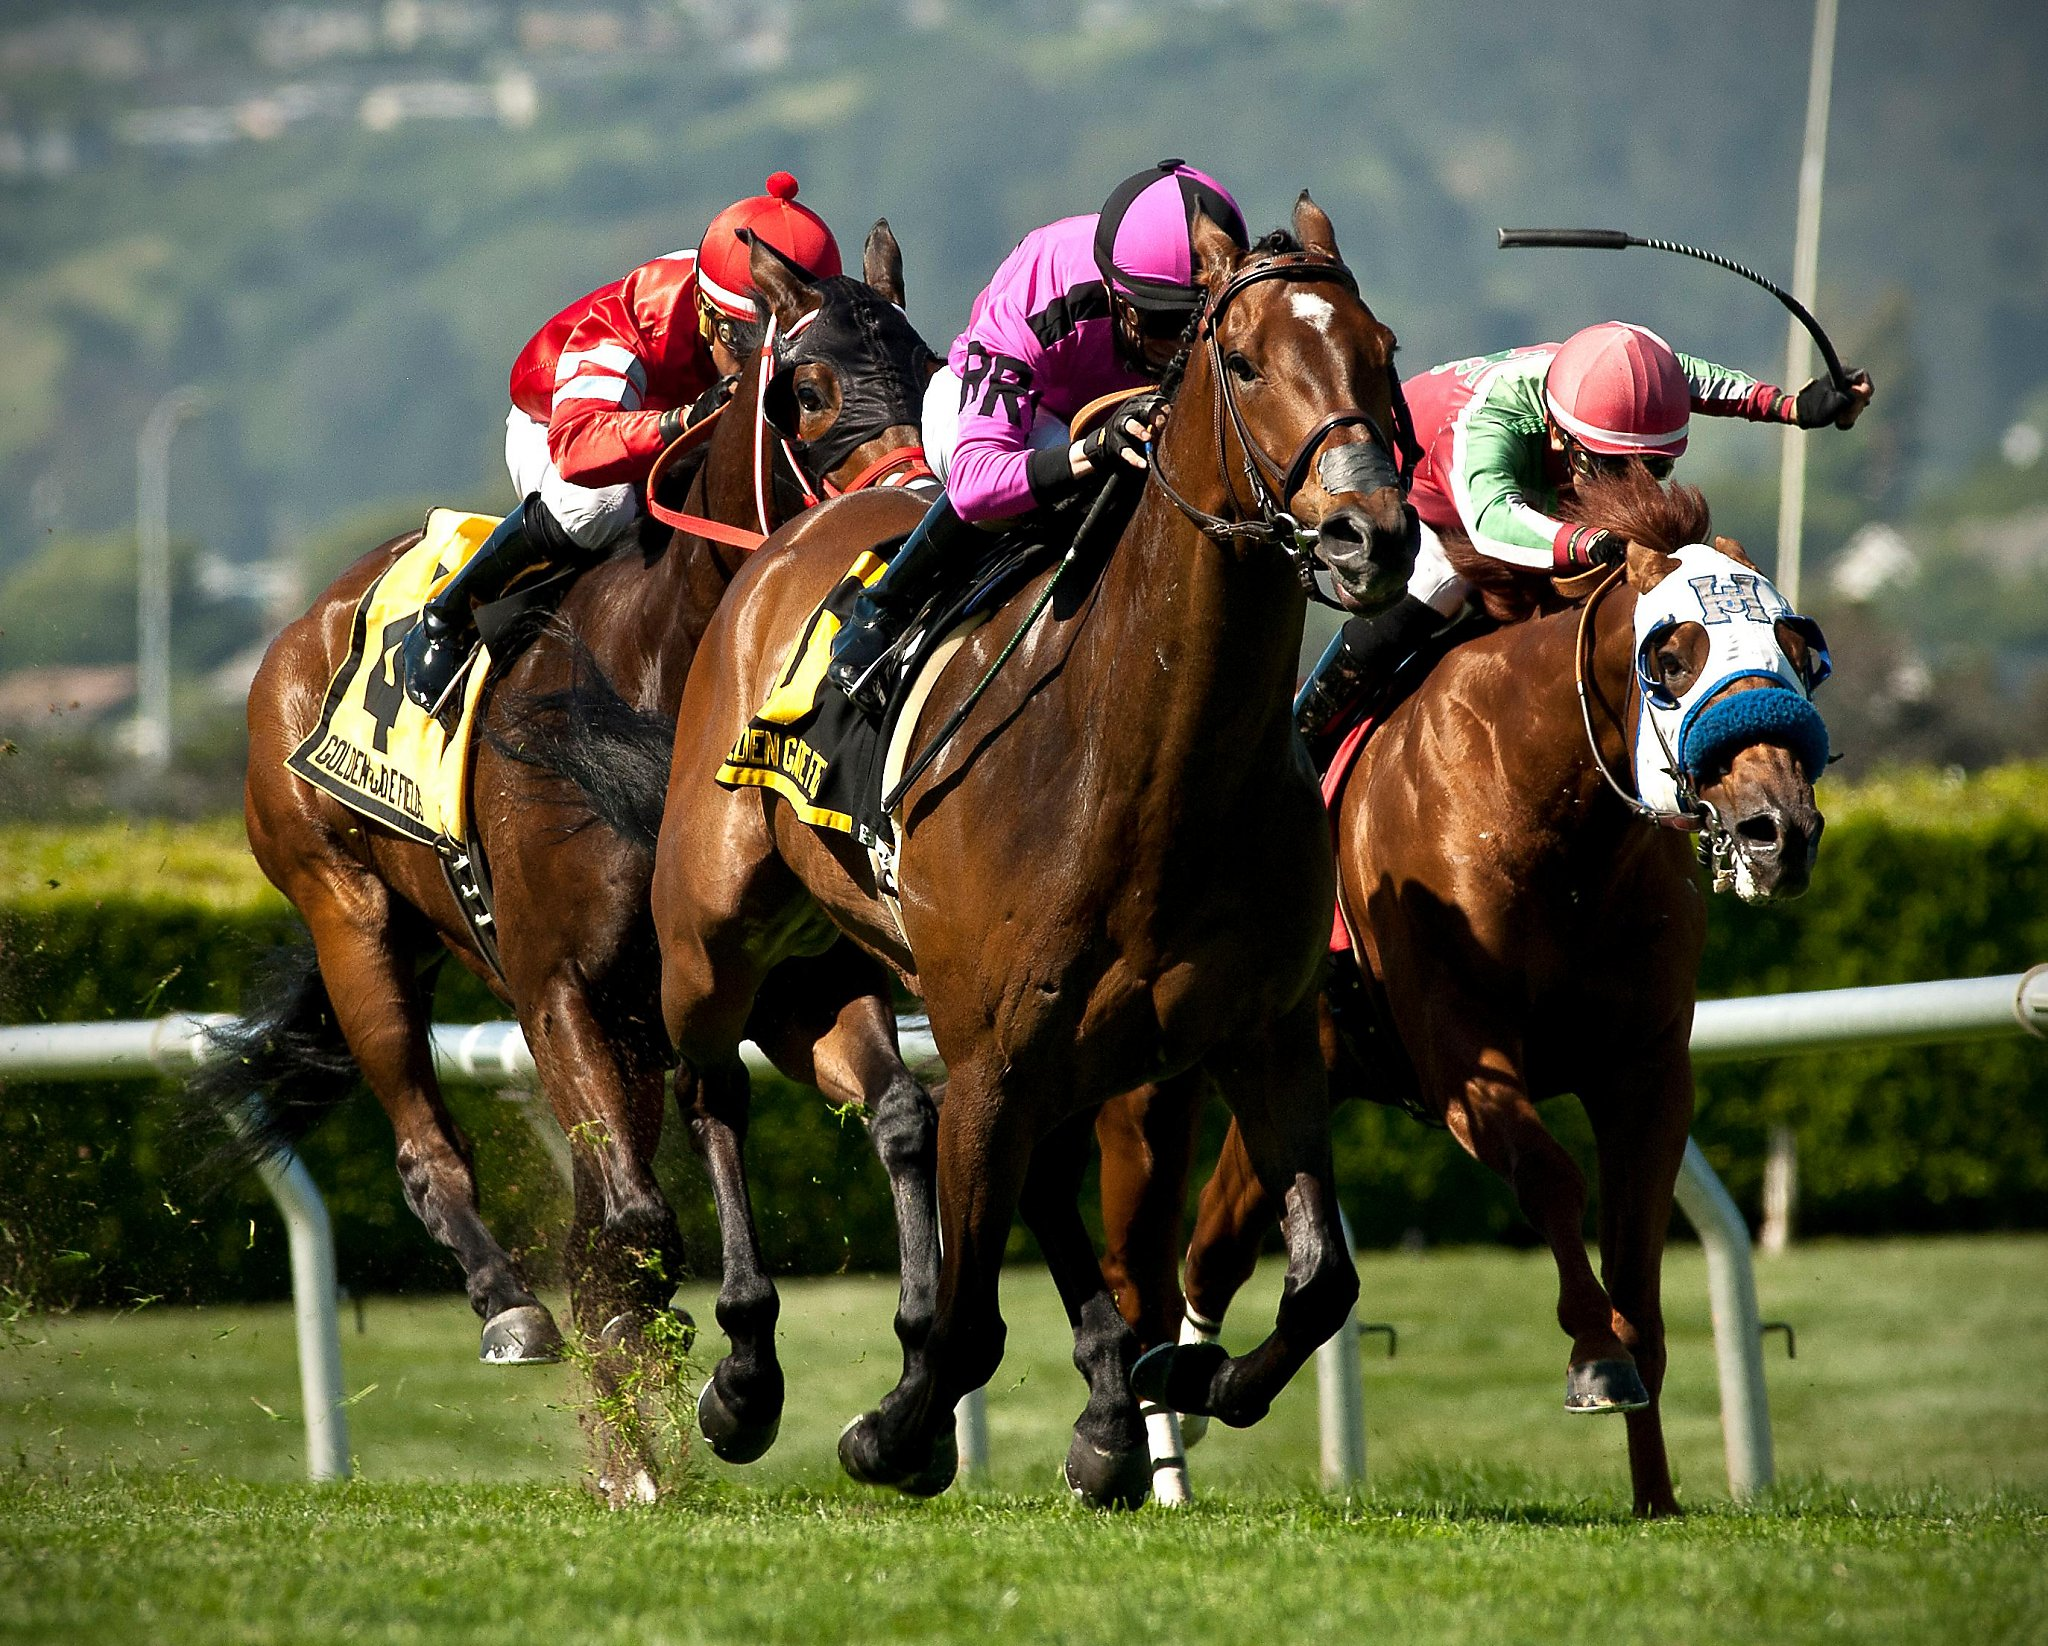 Golden Gate Fields bunches stakes races on April 27 - SFGate